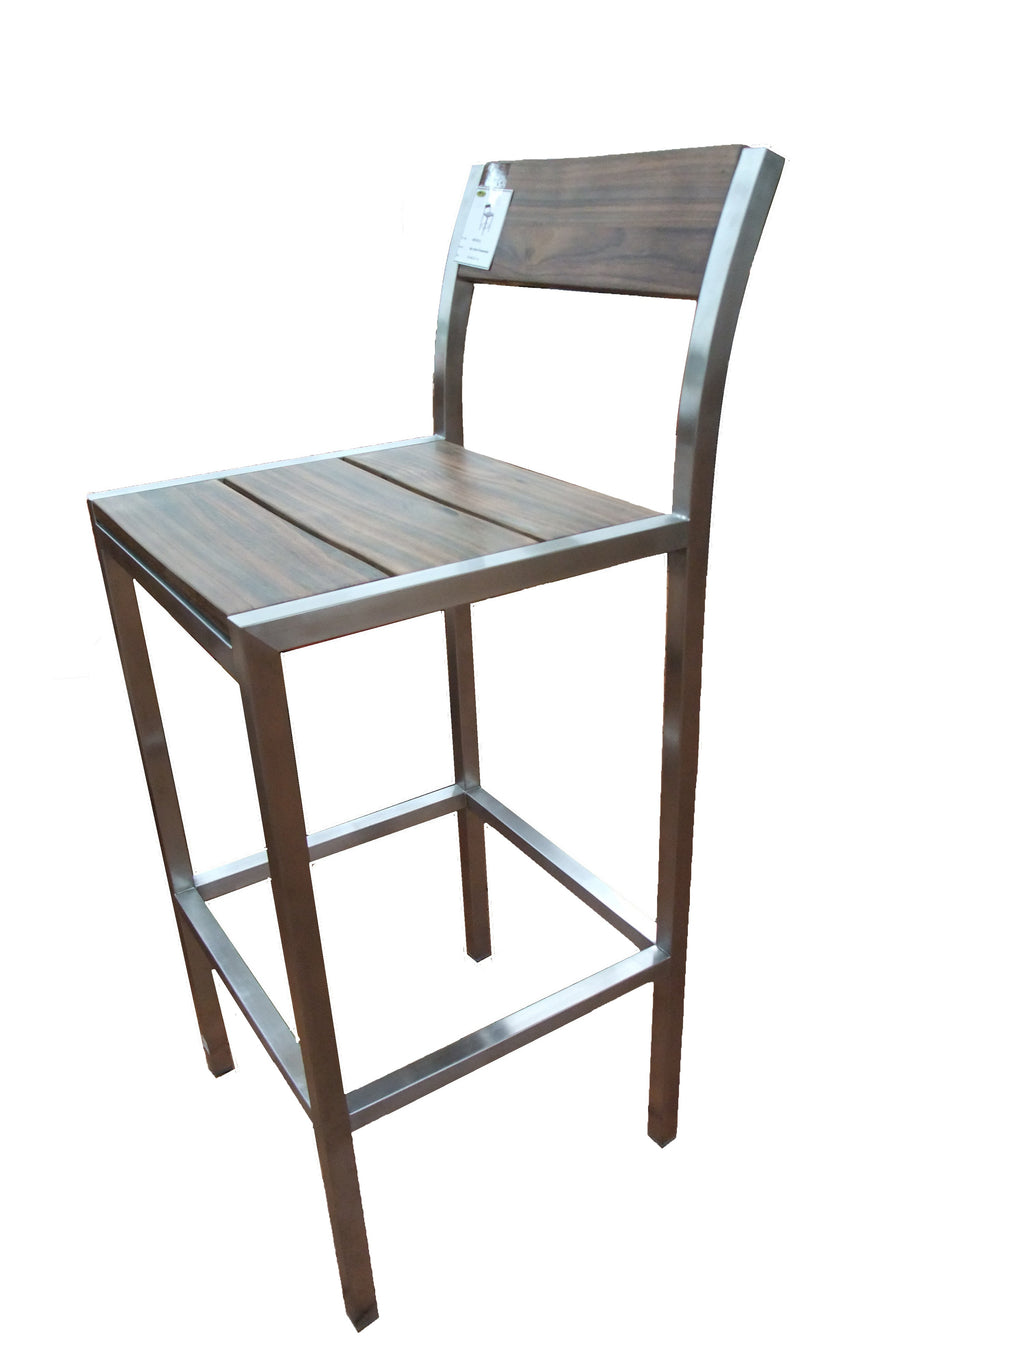 Simple but elegant rosewood bar high chairs, 304 stain steel, its durable to use indoors or outdoors. Match with Titan Arus Bar Table.